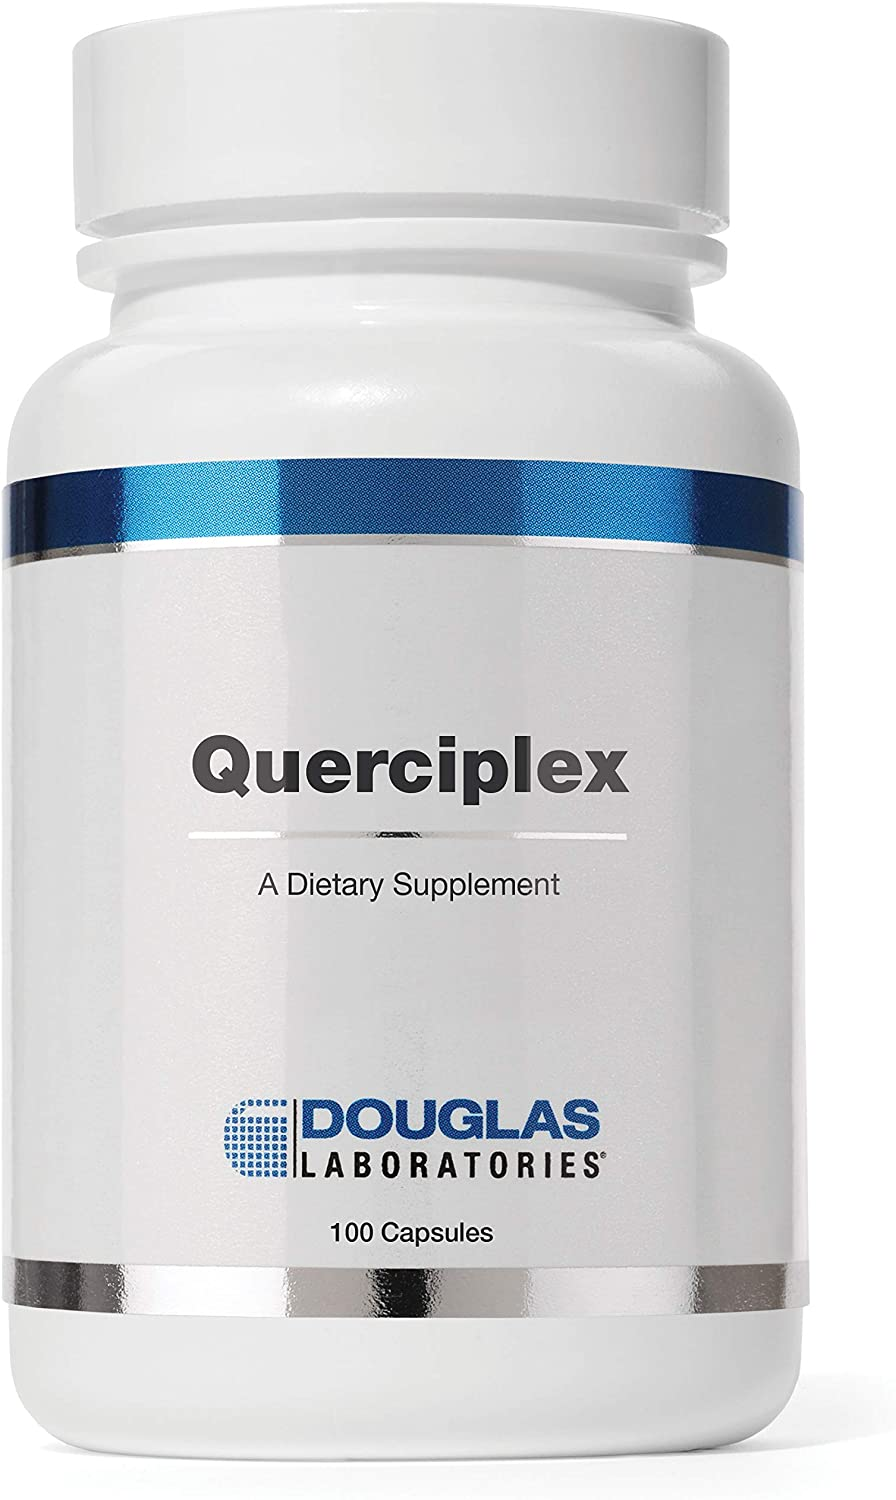 Douglas Laboratories – Querciplex – Combination of Quercetin and Bromelain to Support Immune Cell Function and Vascular Health* – 100 Capsules